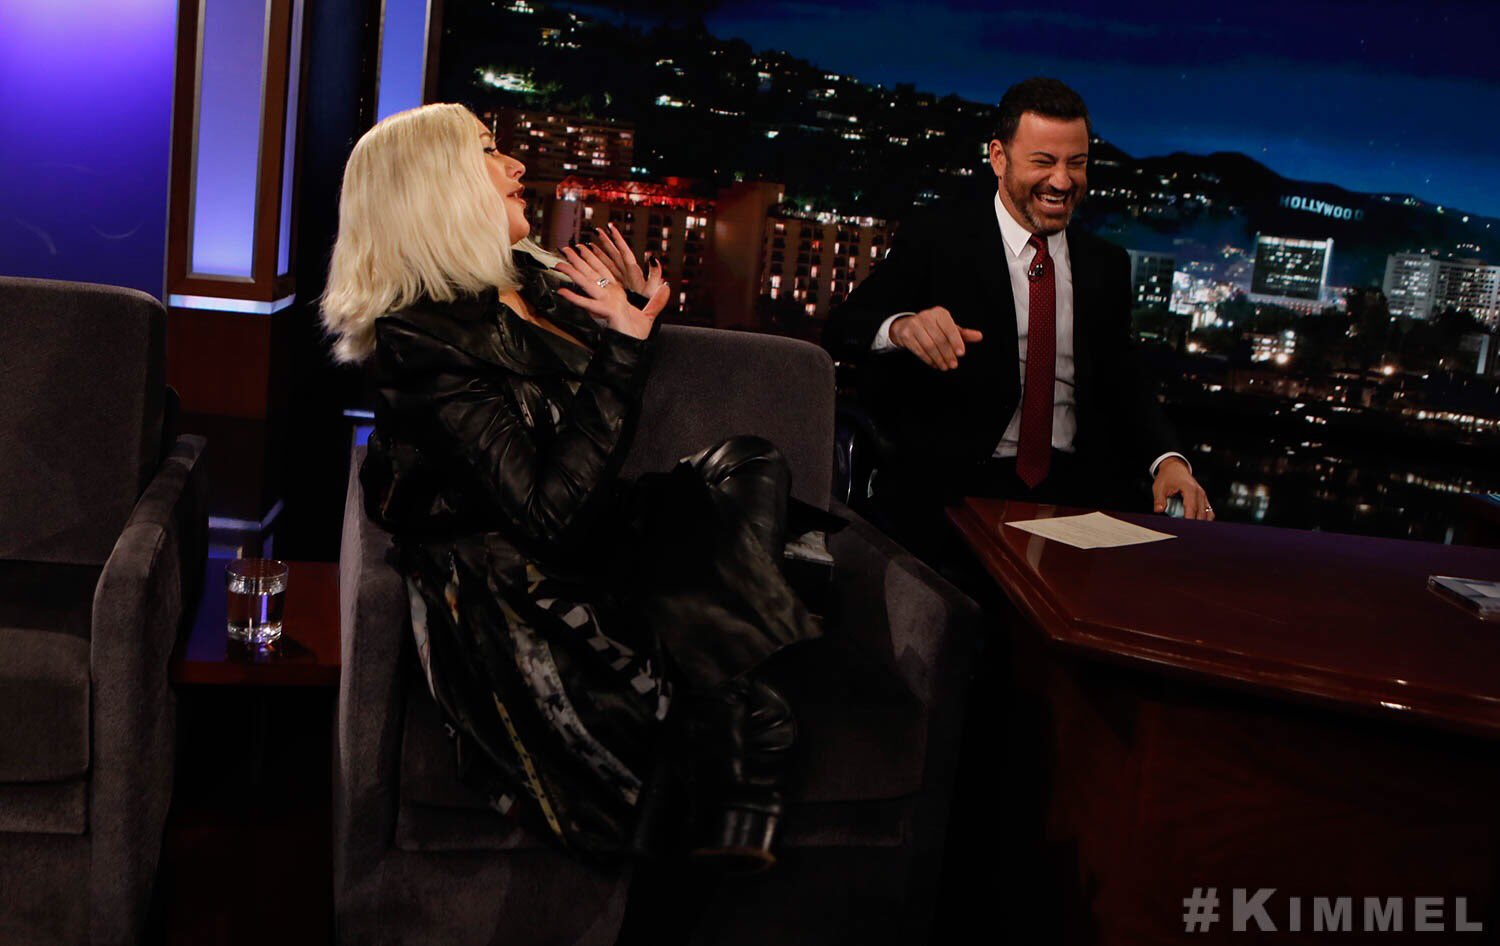 Always a great time with #Kimmel  https://t.co/klPO4jsquu ������ https://t.co/fV15fVzvpG